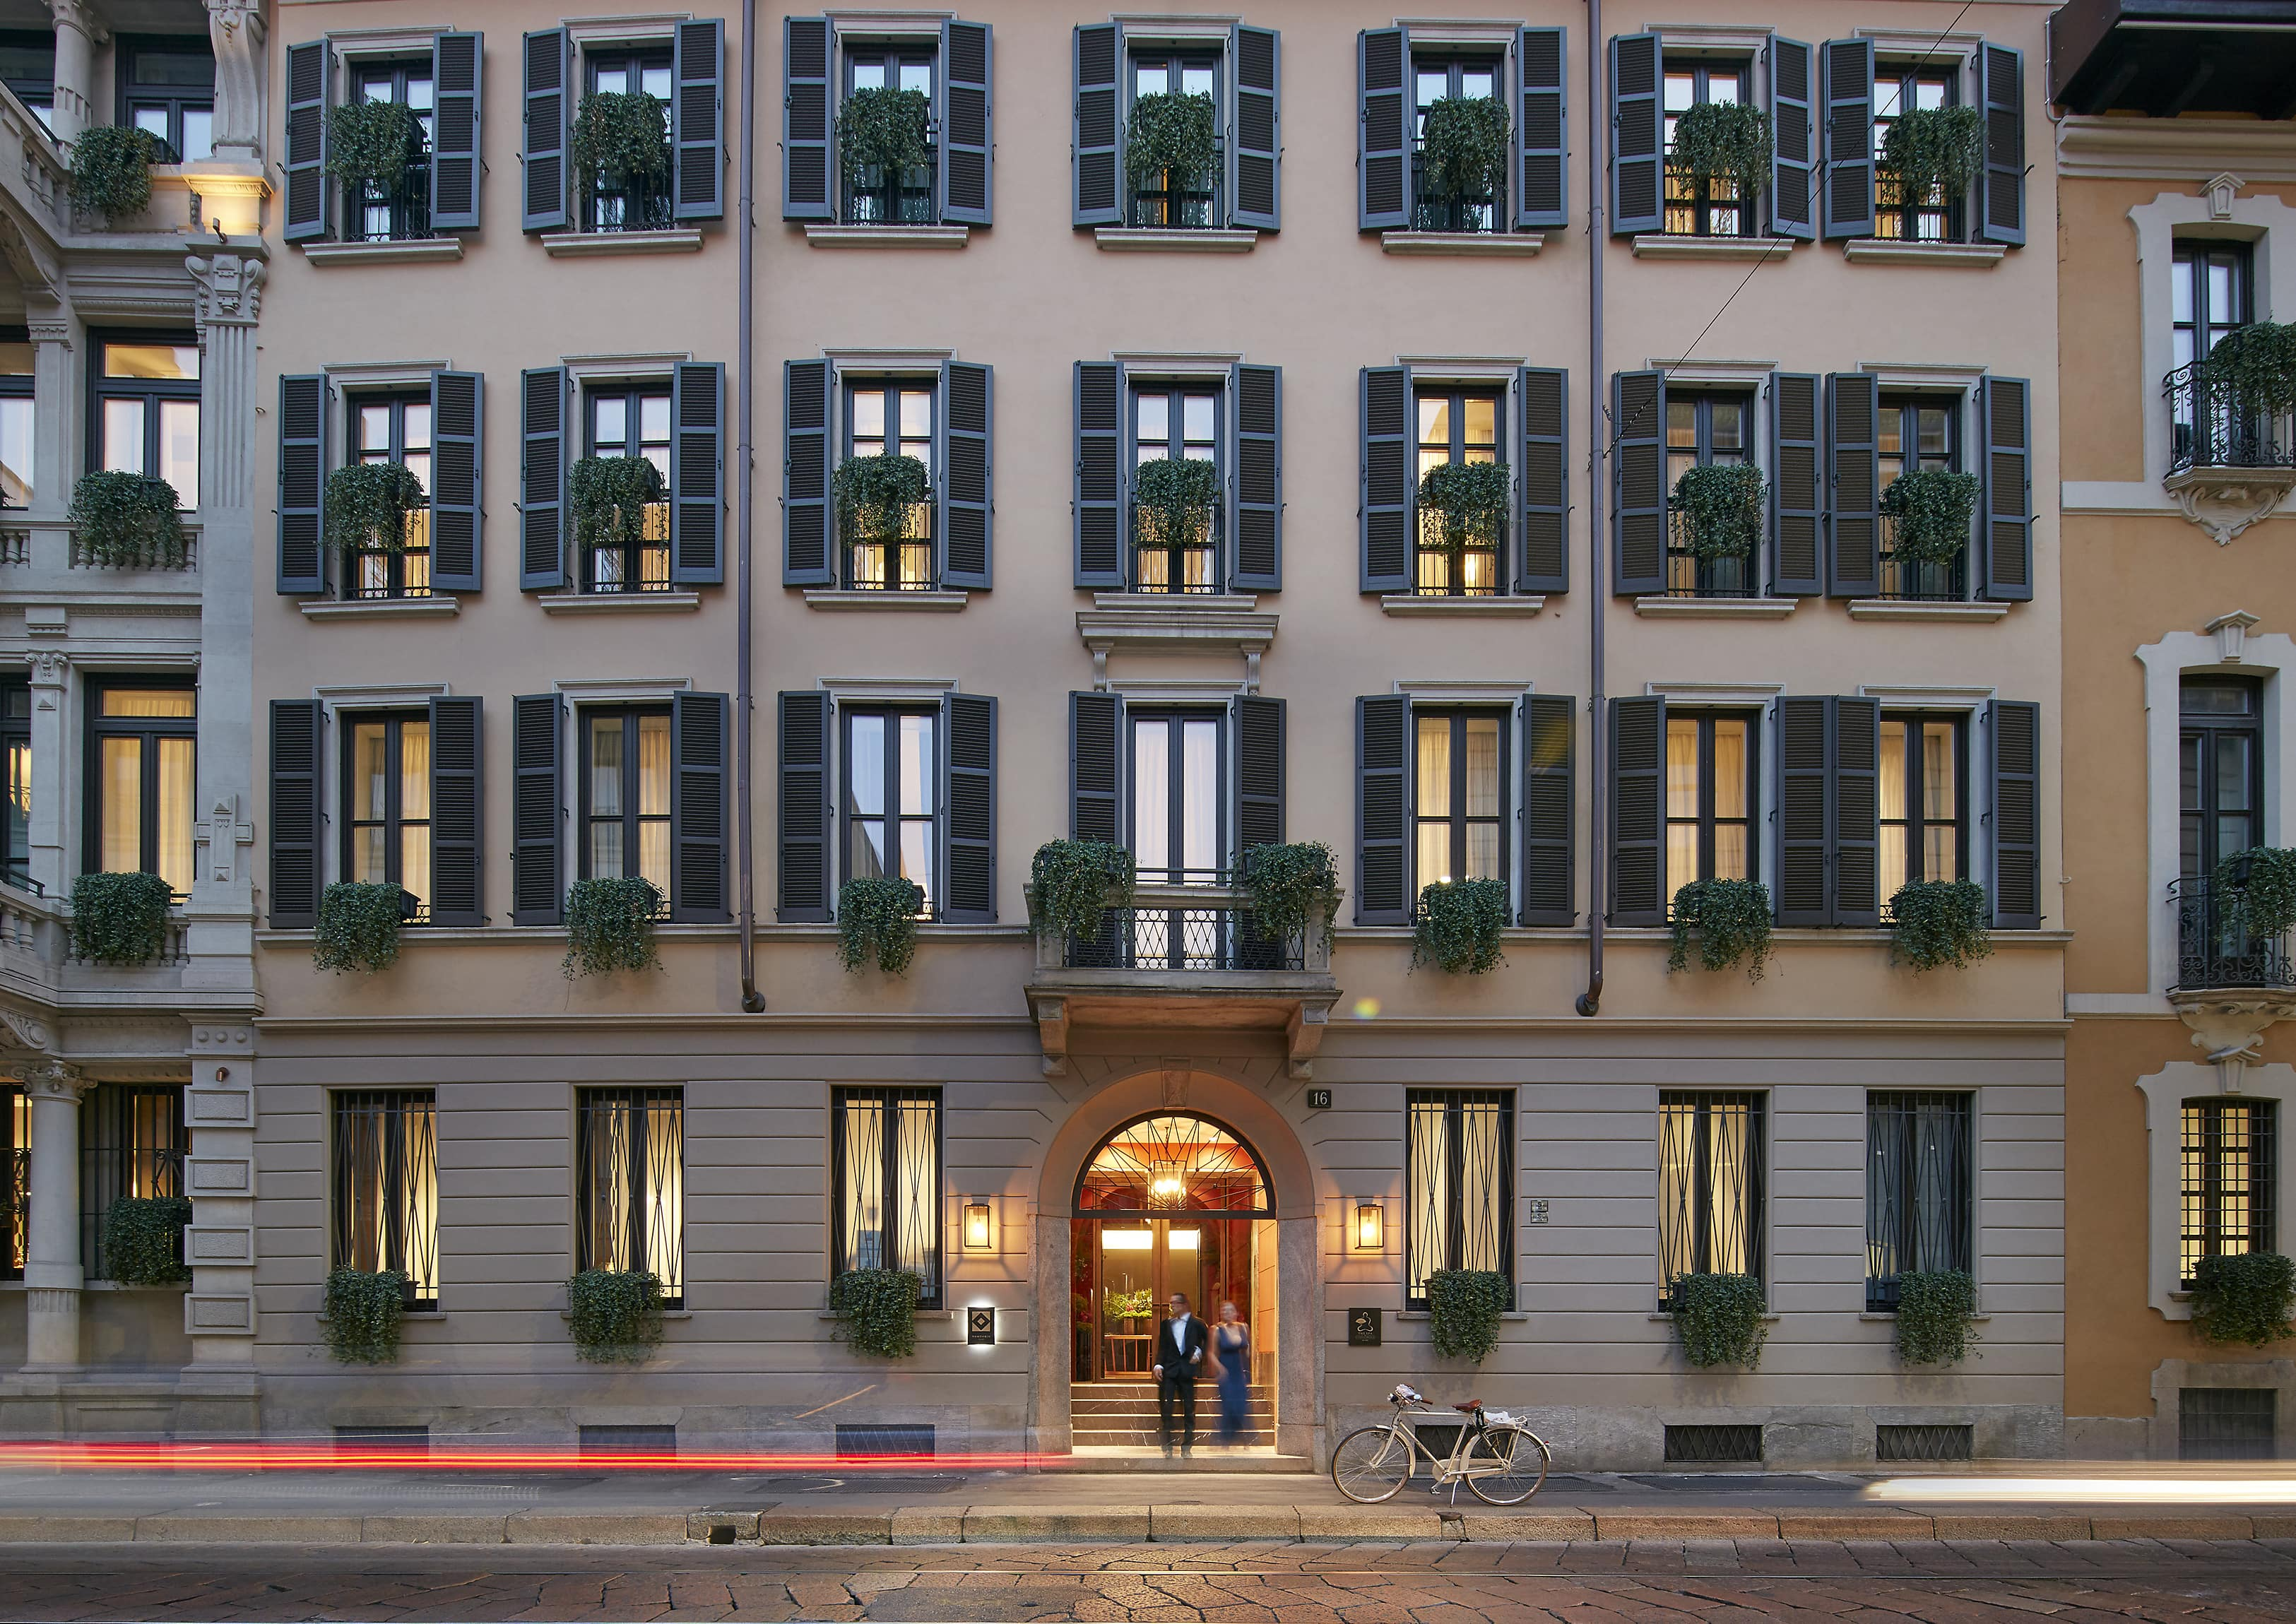 Milan hotel photo gallery mandarin oriental hotel milan for Hotel milano